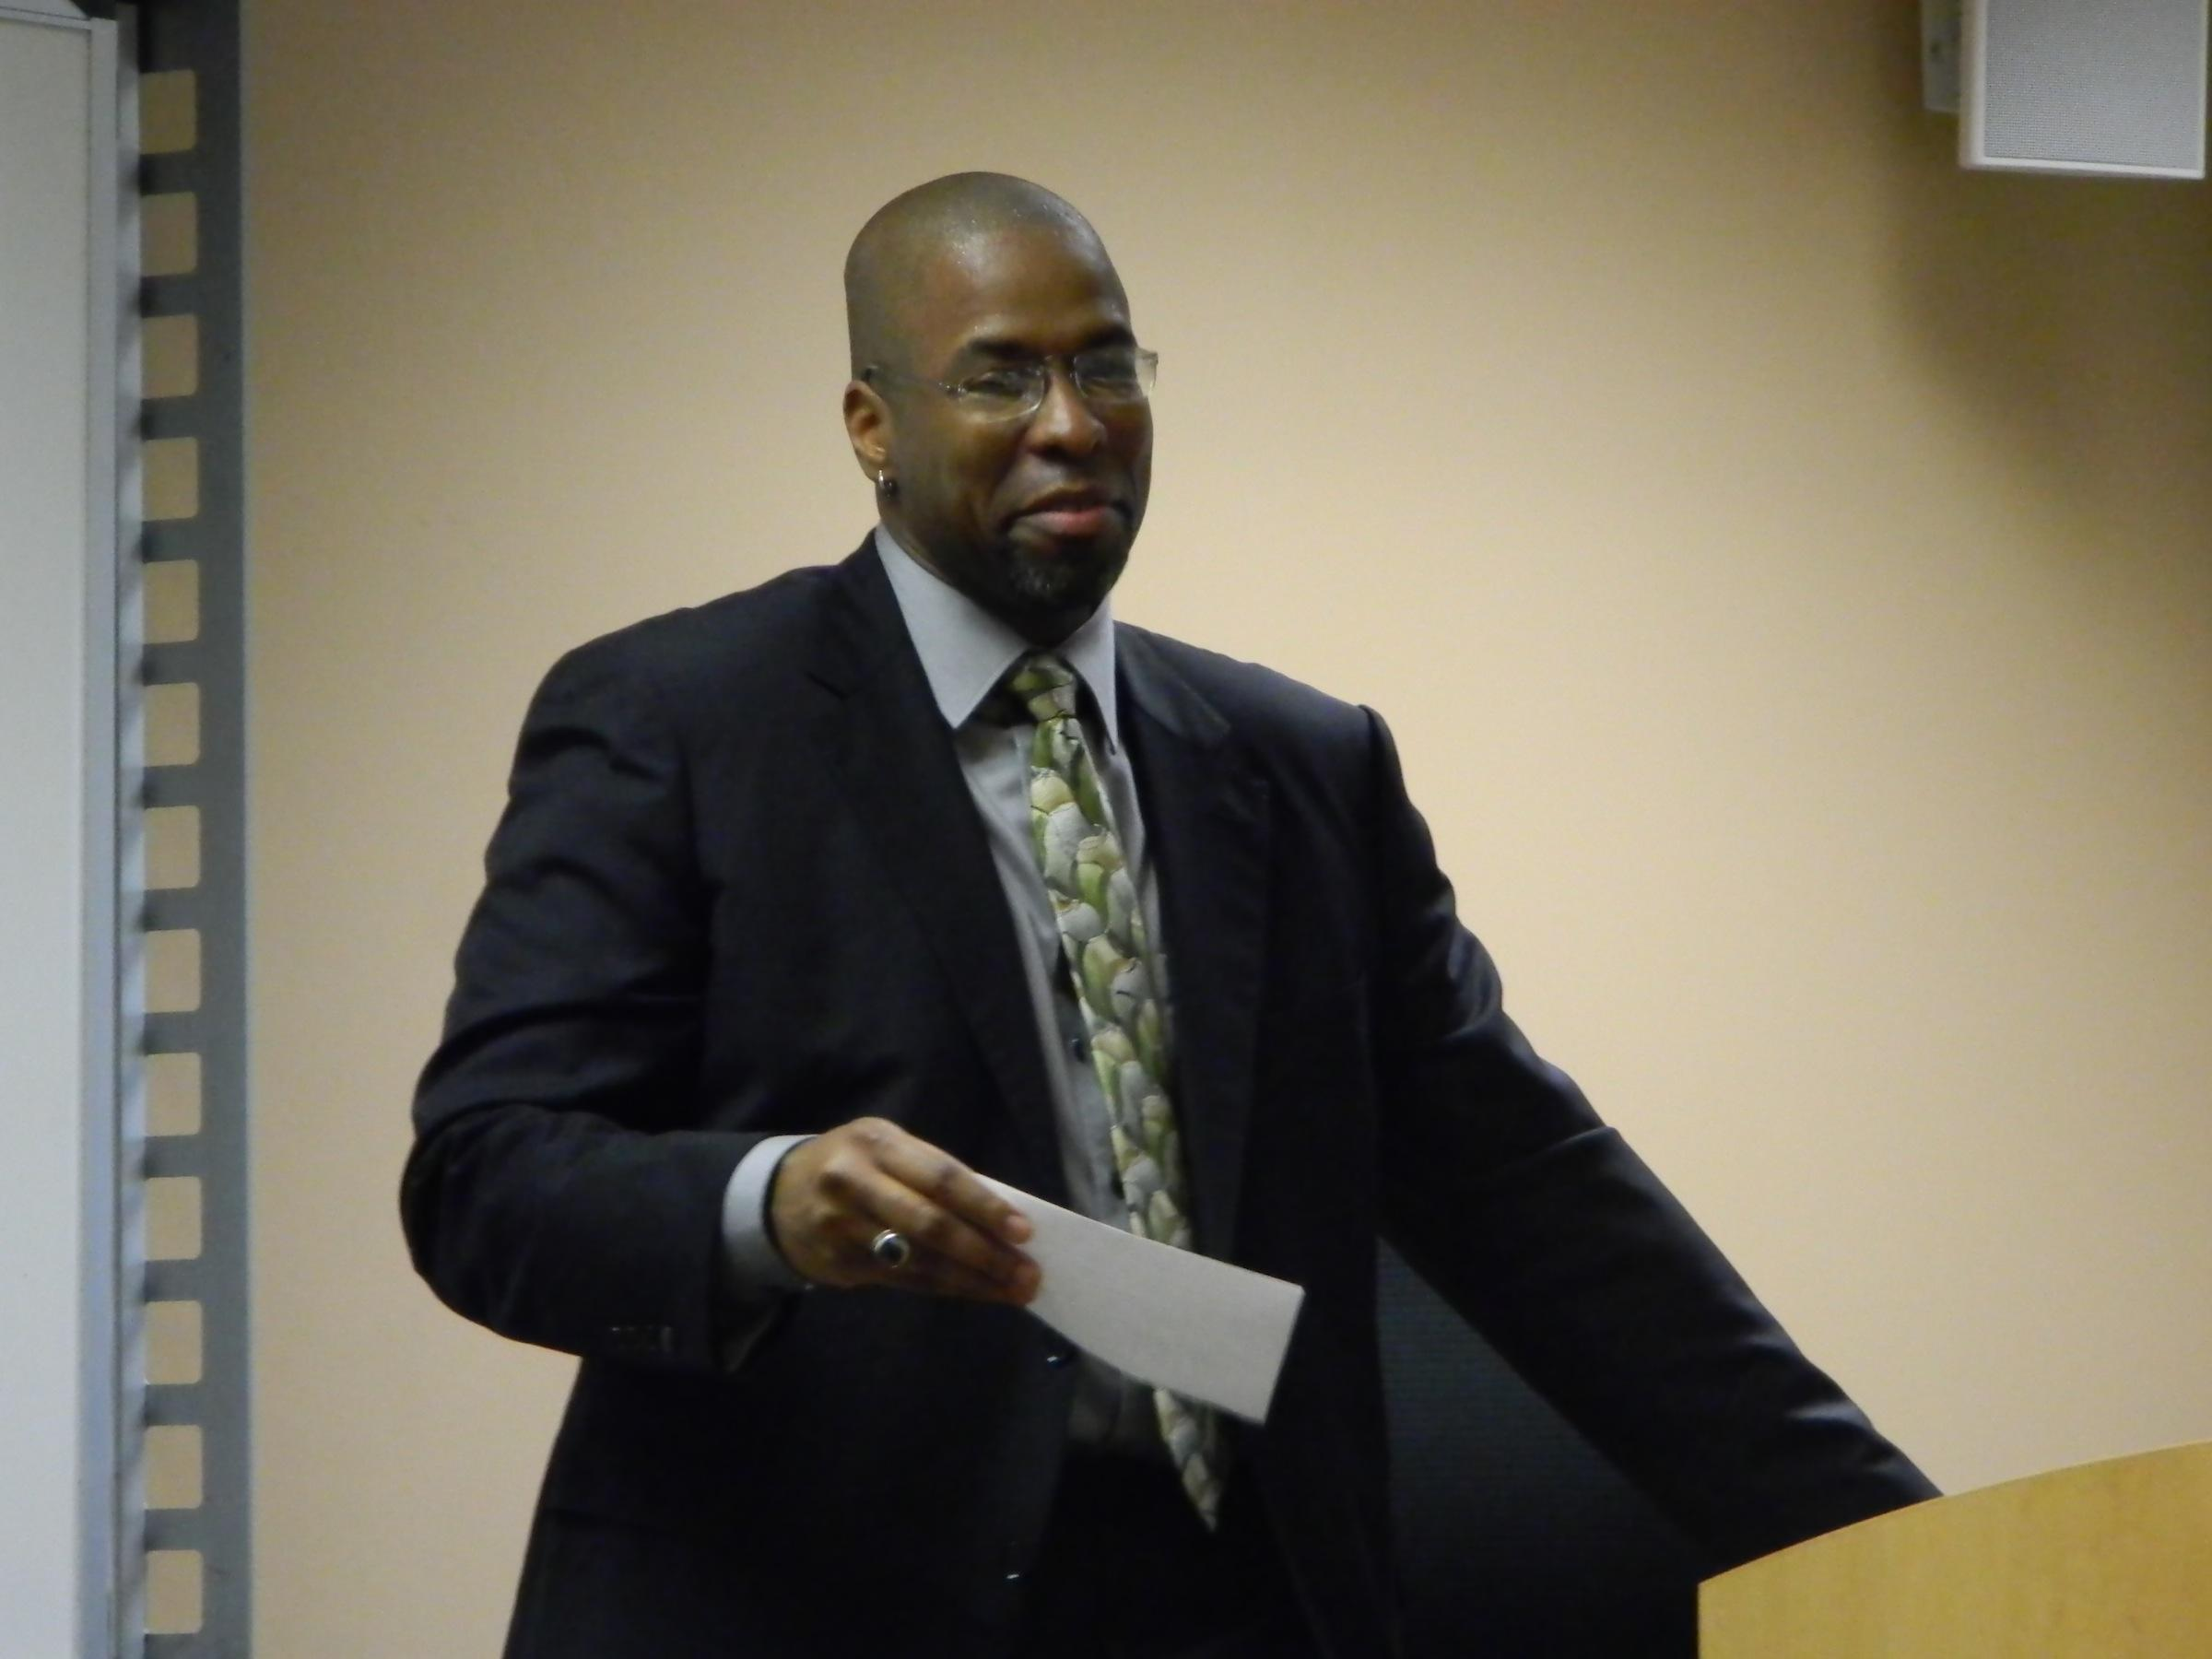 Jeffrey Sterling speaks to a class last year at Millikin. Sterling's life is still in limbo as he waits for the Department of Justice to decide whether to continue prosecution of his case.